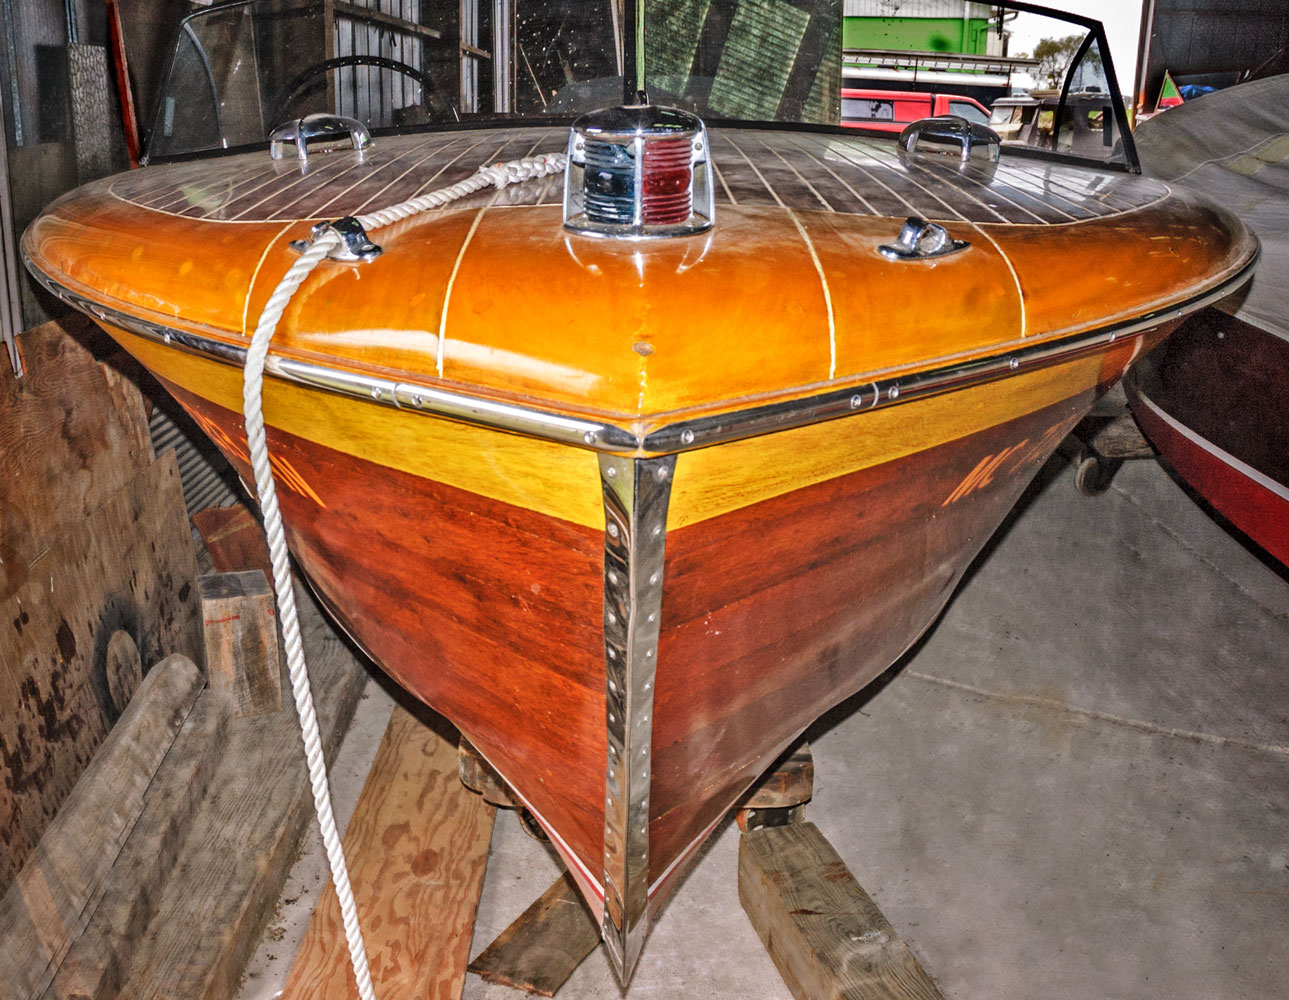 Archived Featured Boats: Cuthbertson Marine fixes engines and stores